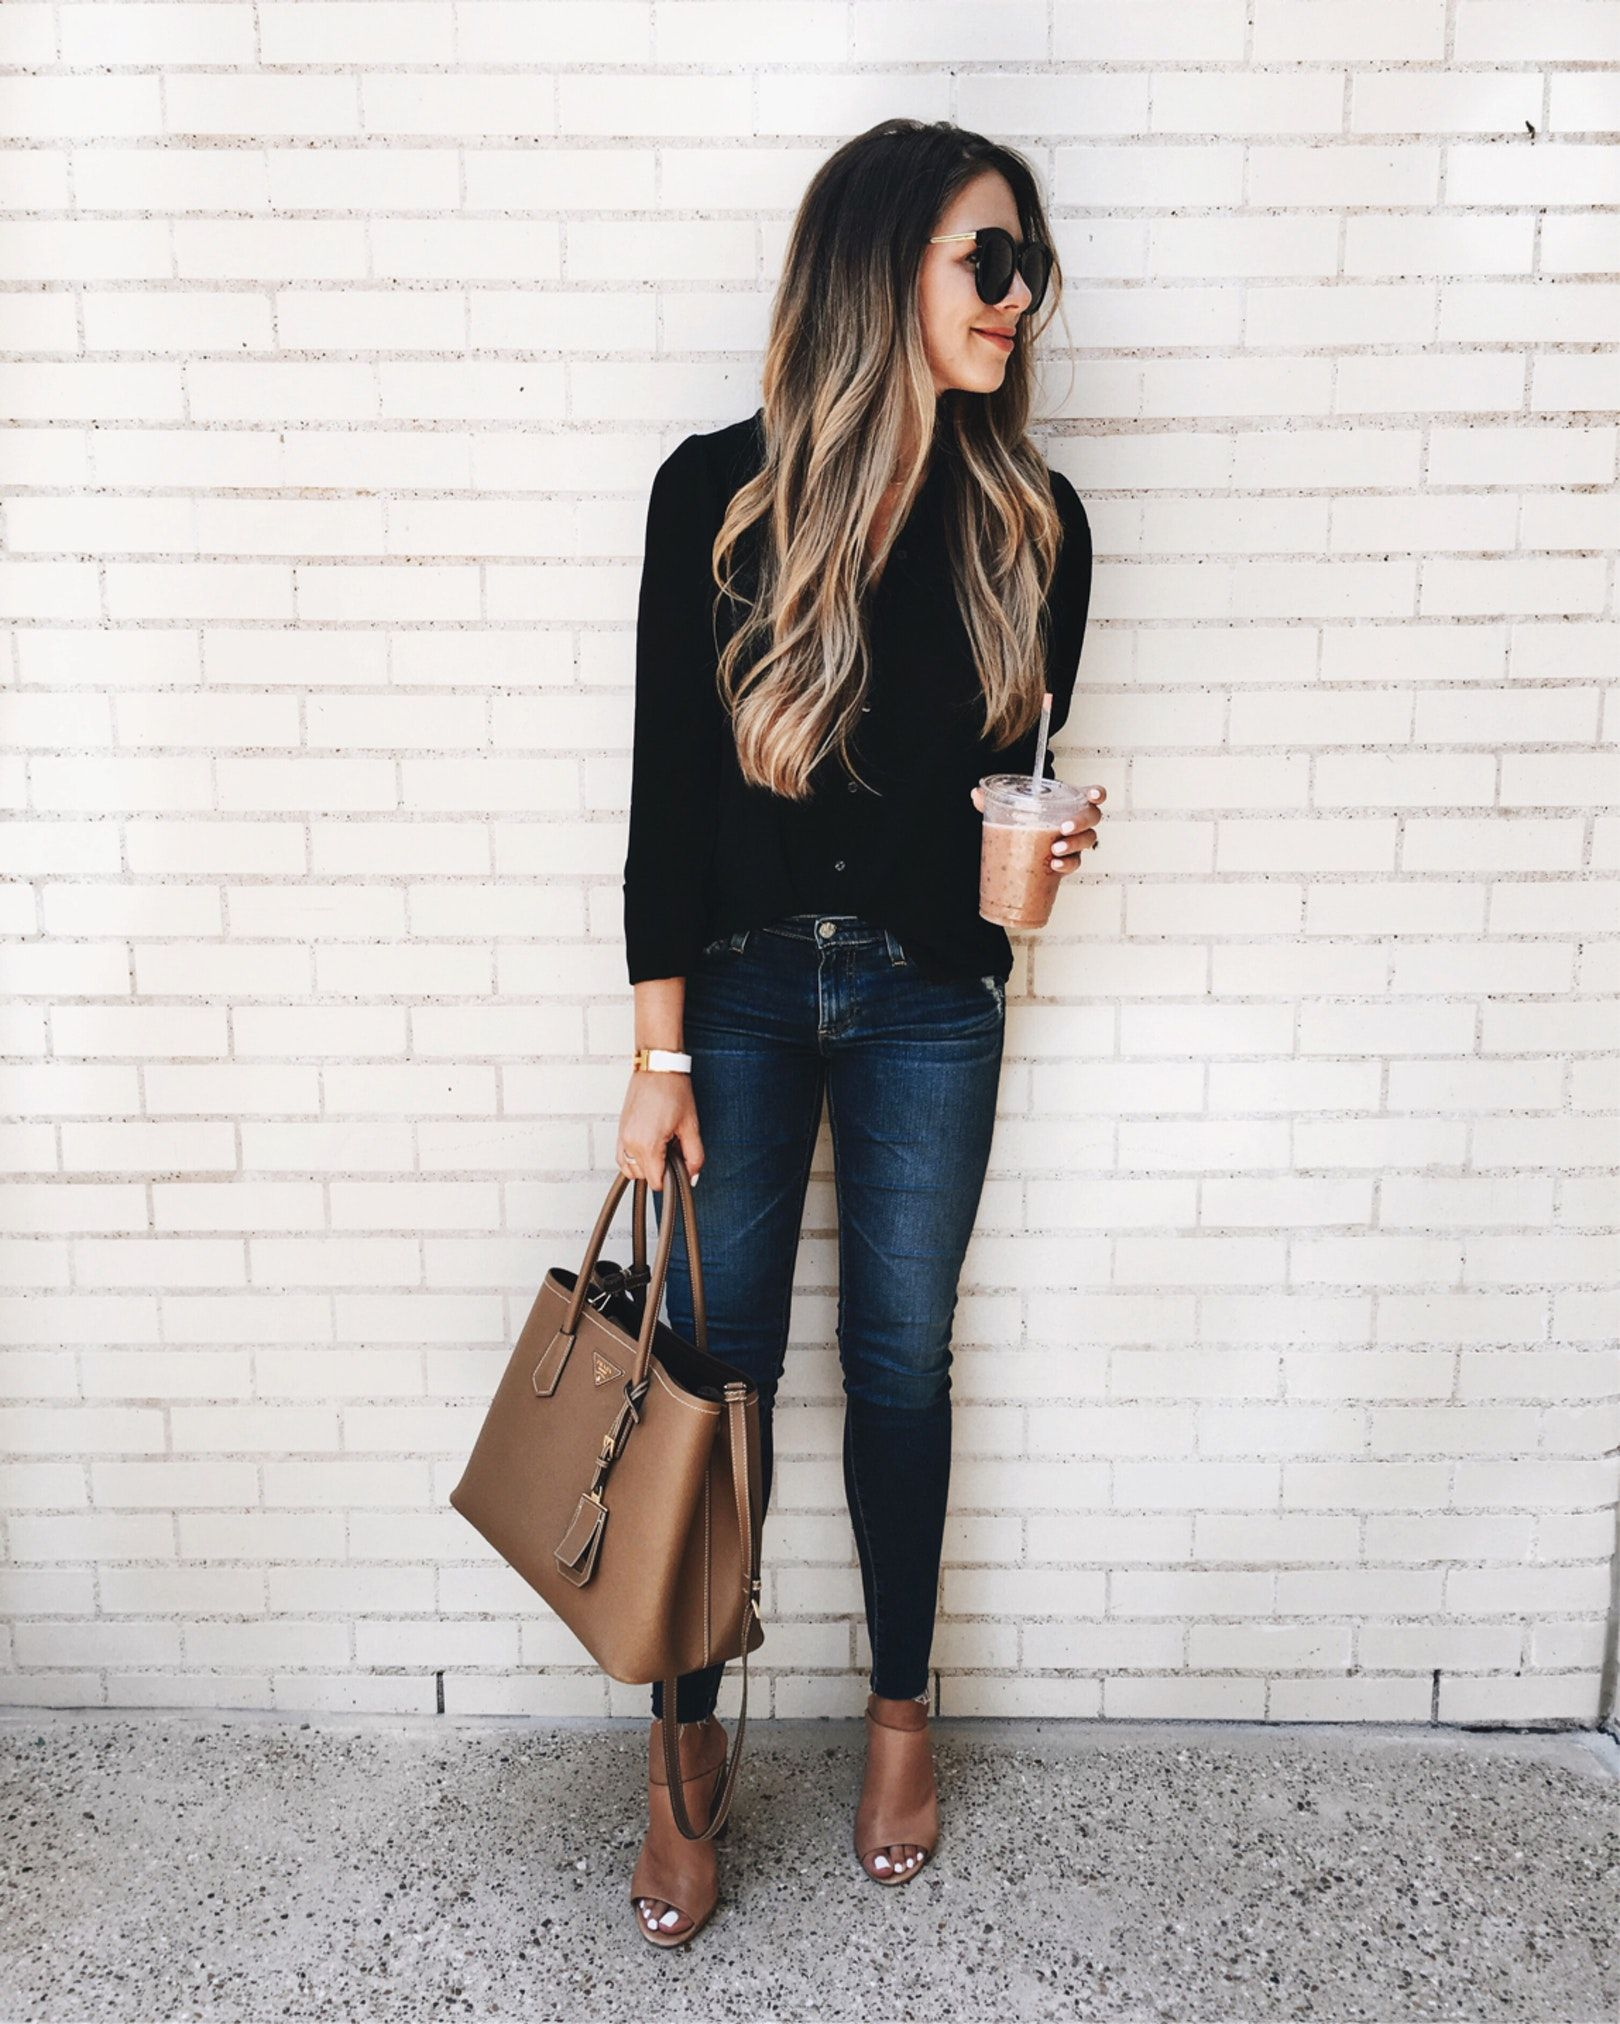 To acquire Ideas: Outfit 2 Luxe Looks for Winter picture trends